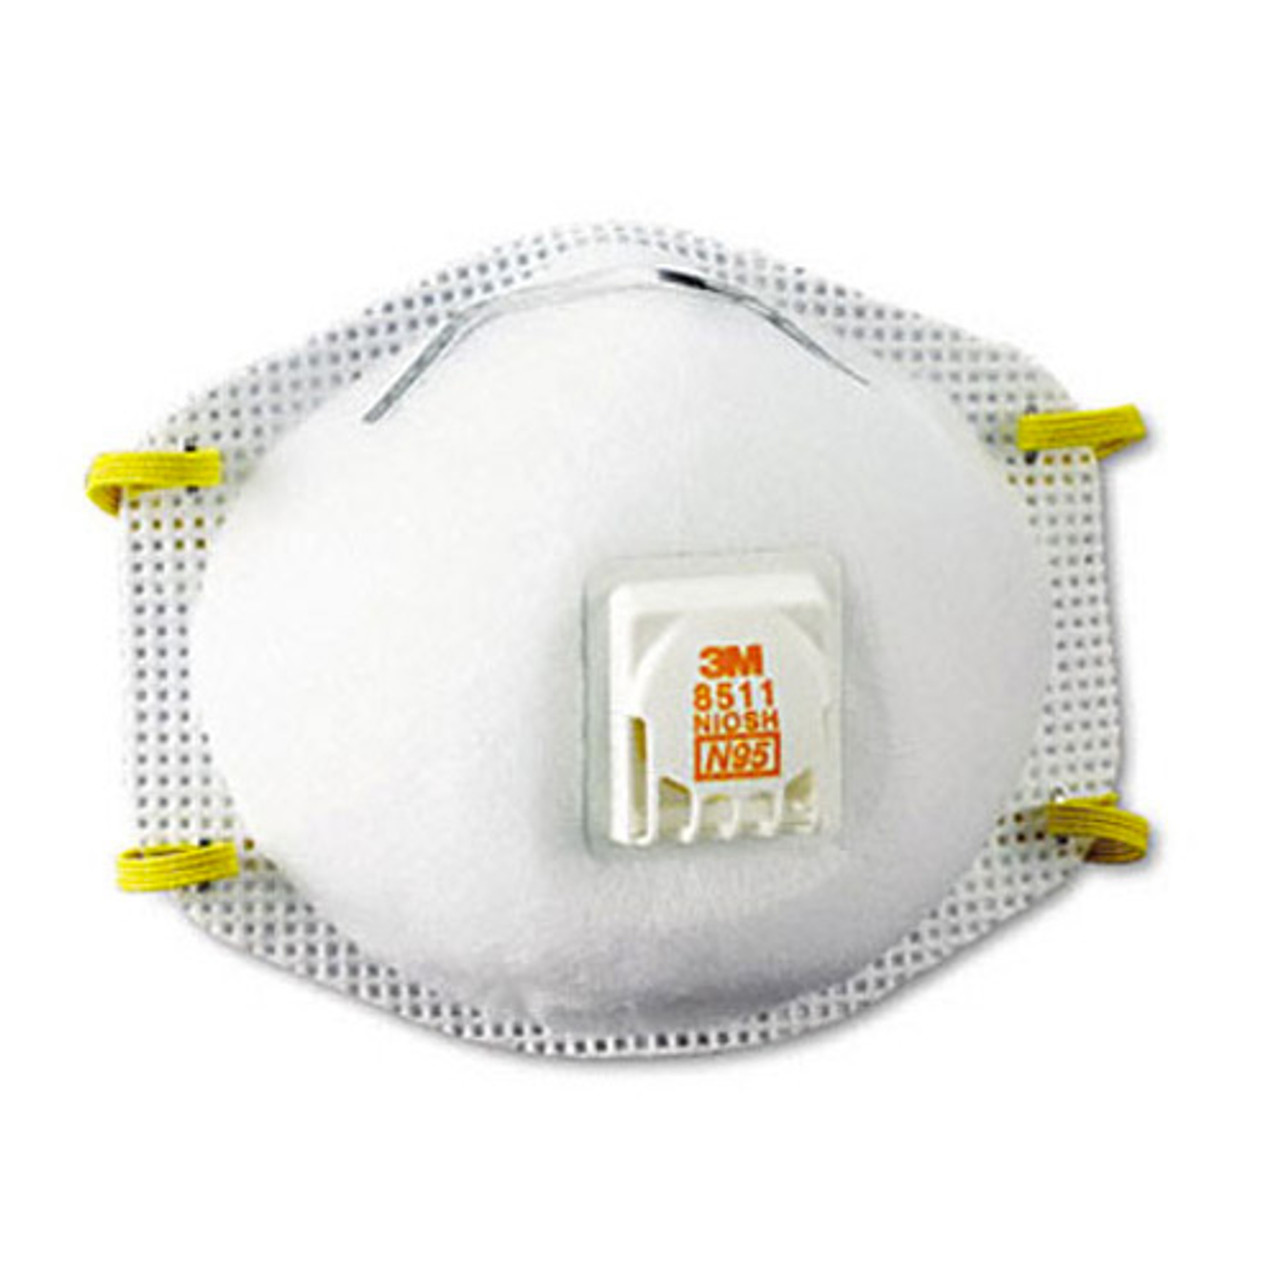 Particulate Pack 3m Masks - 10 Respirator N95 Dust 8511